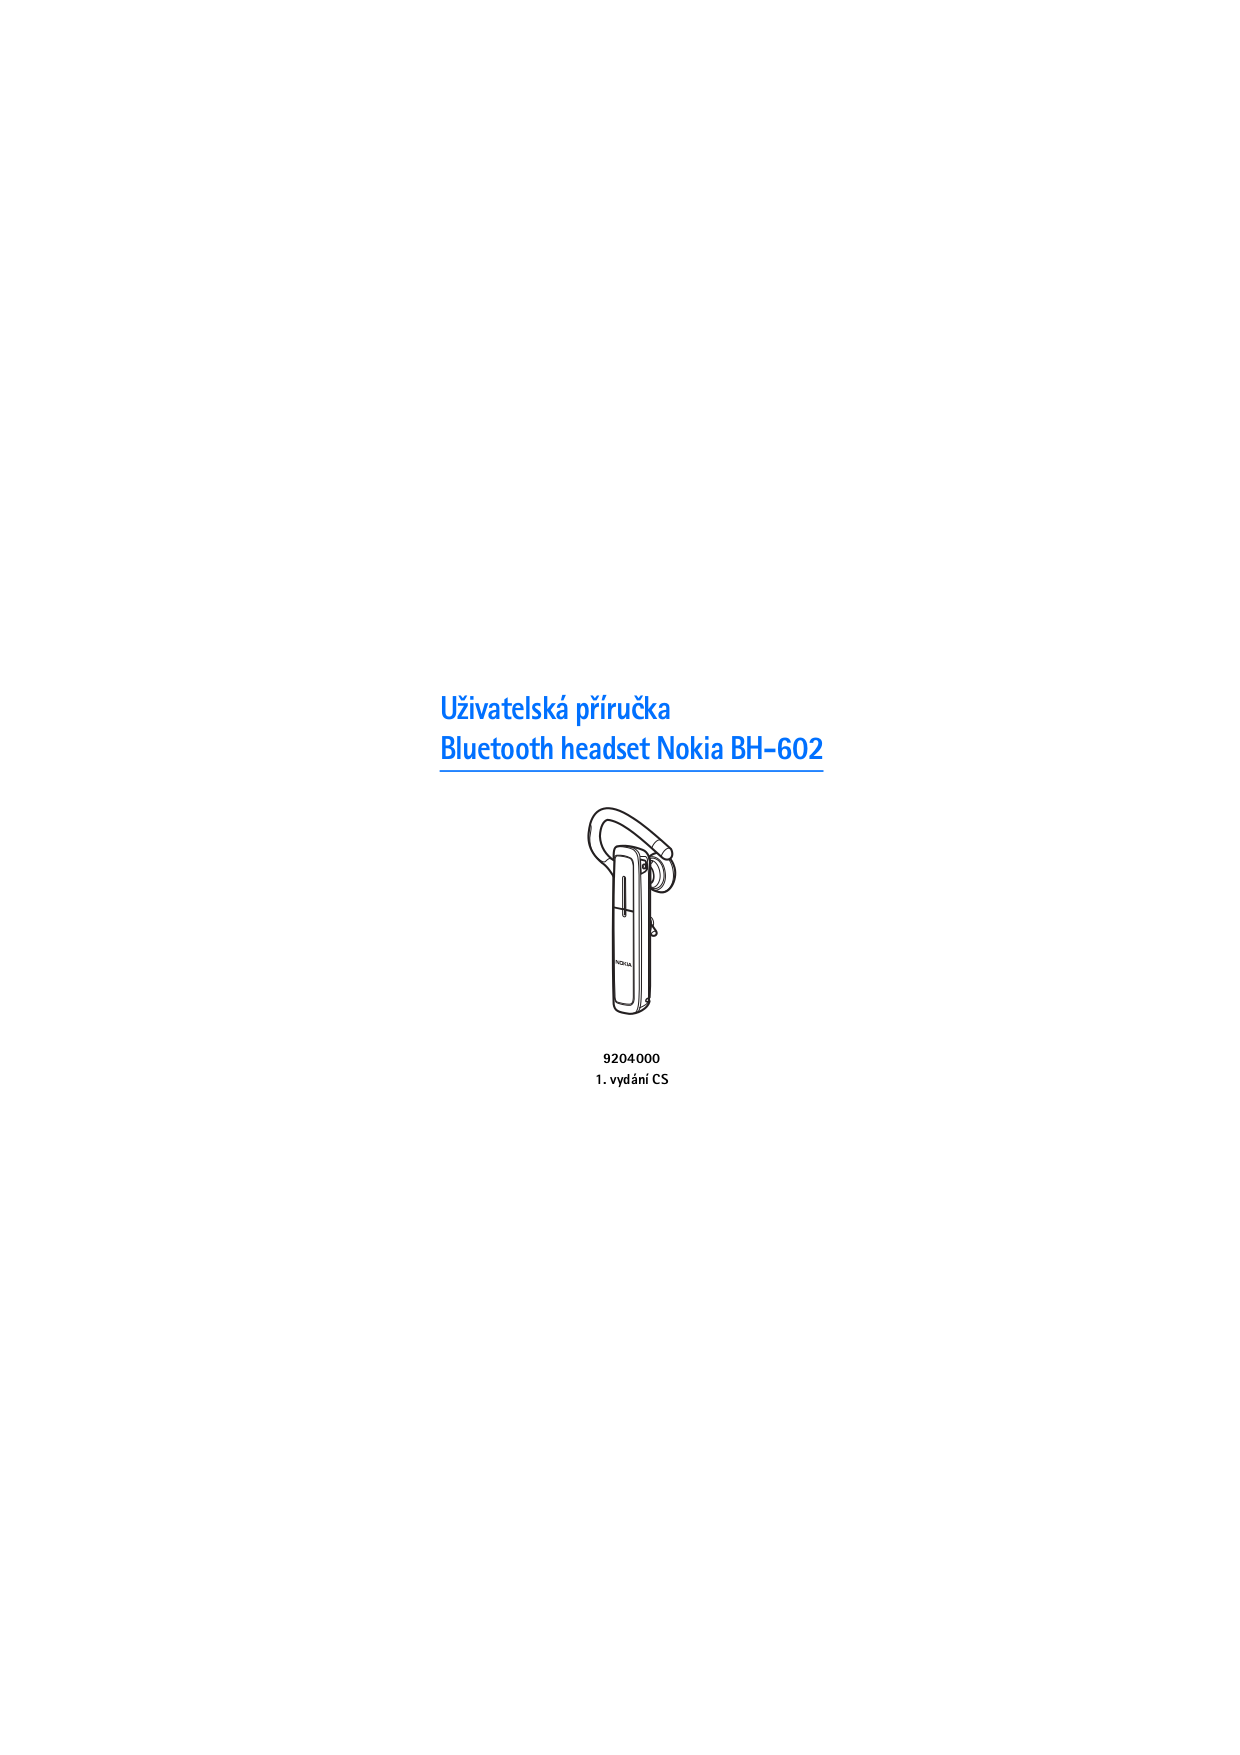 pdf for Nokia Headset BH-602 manual